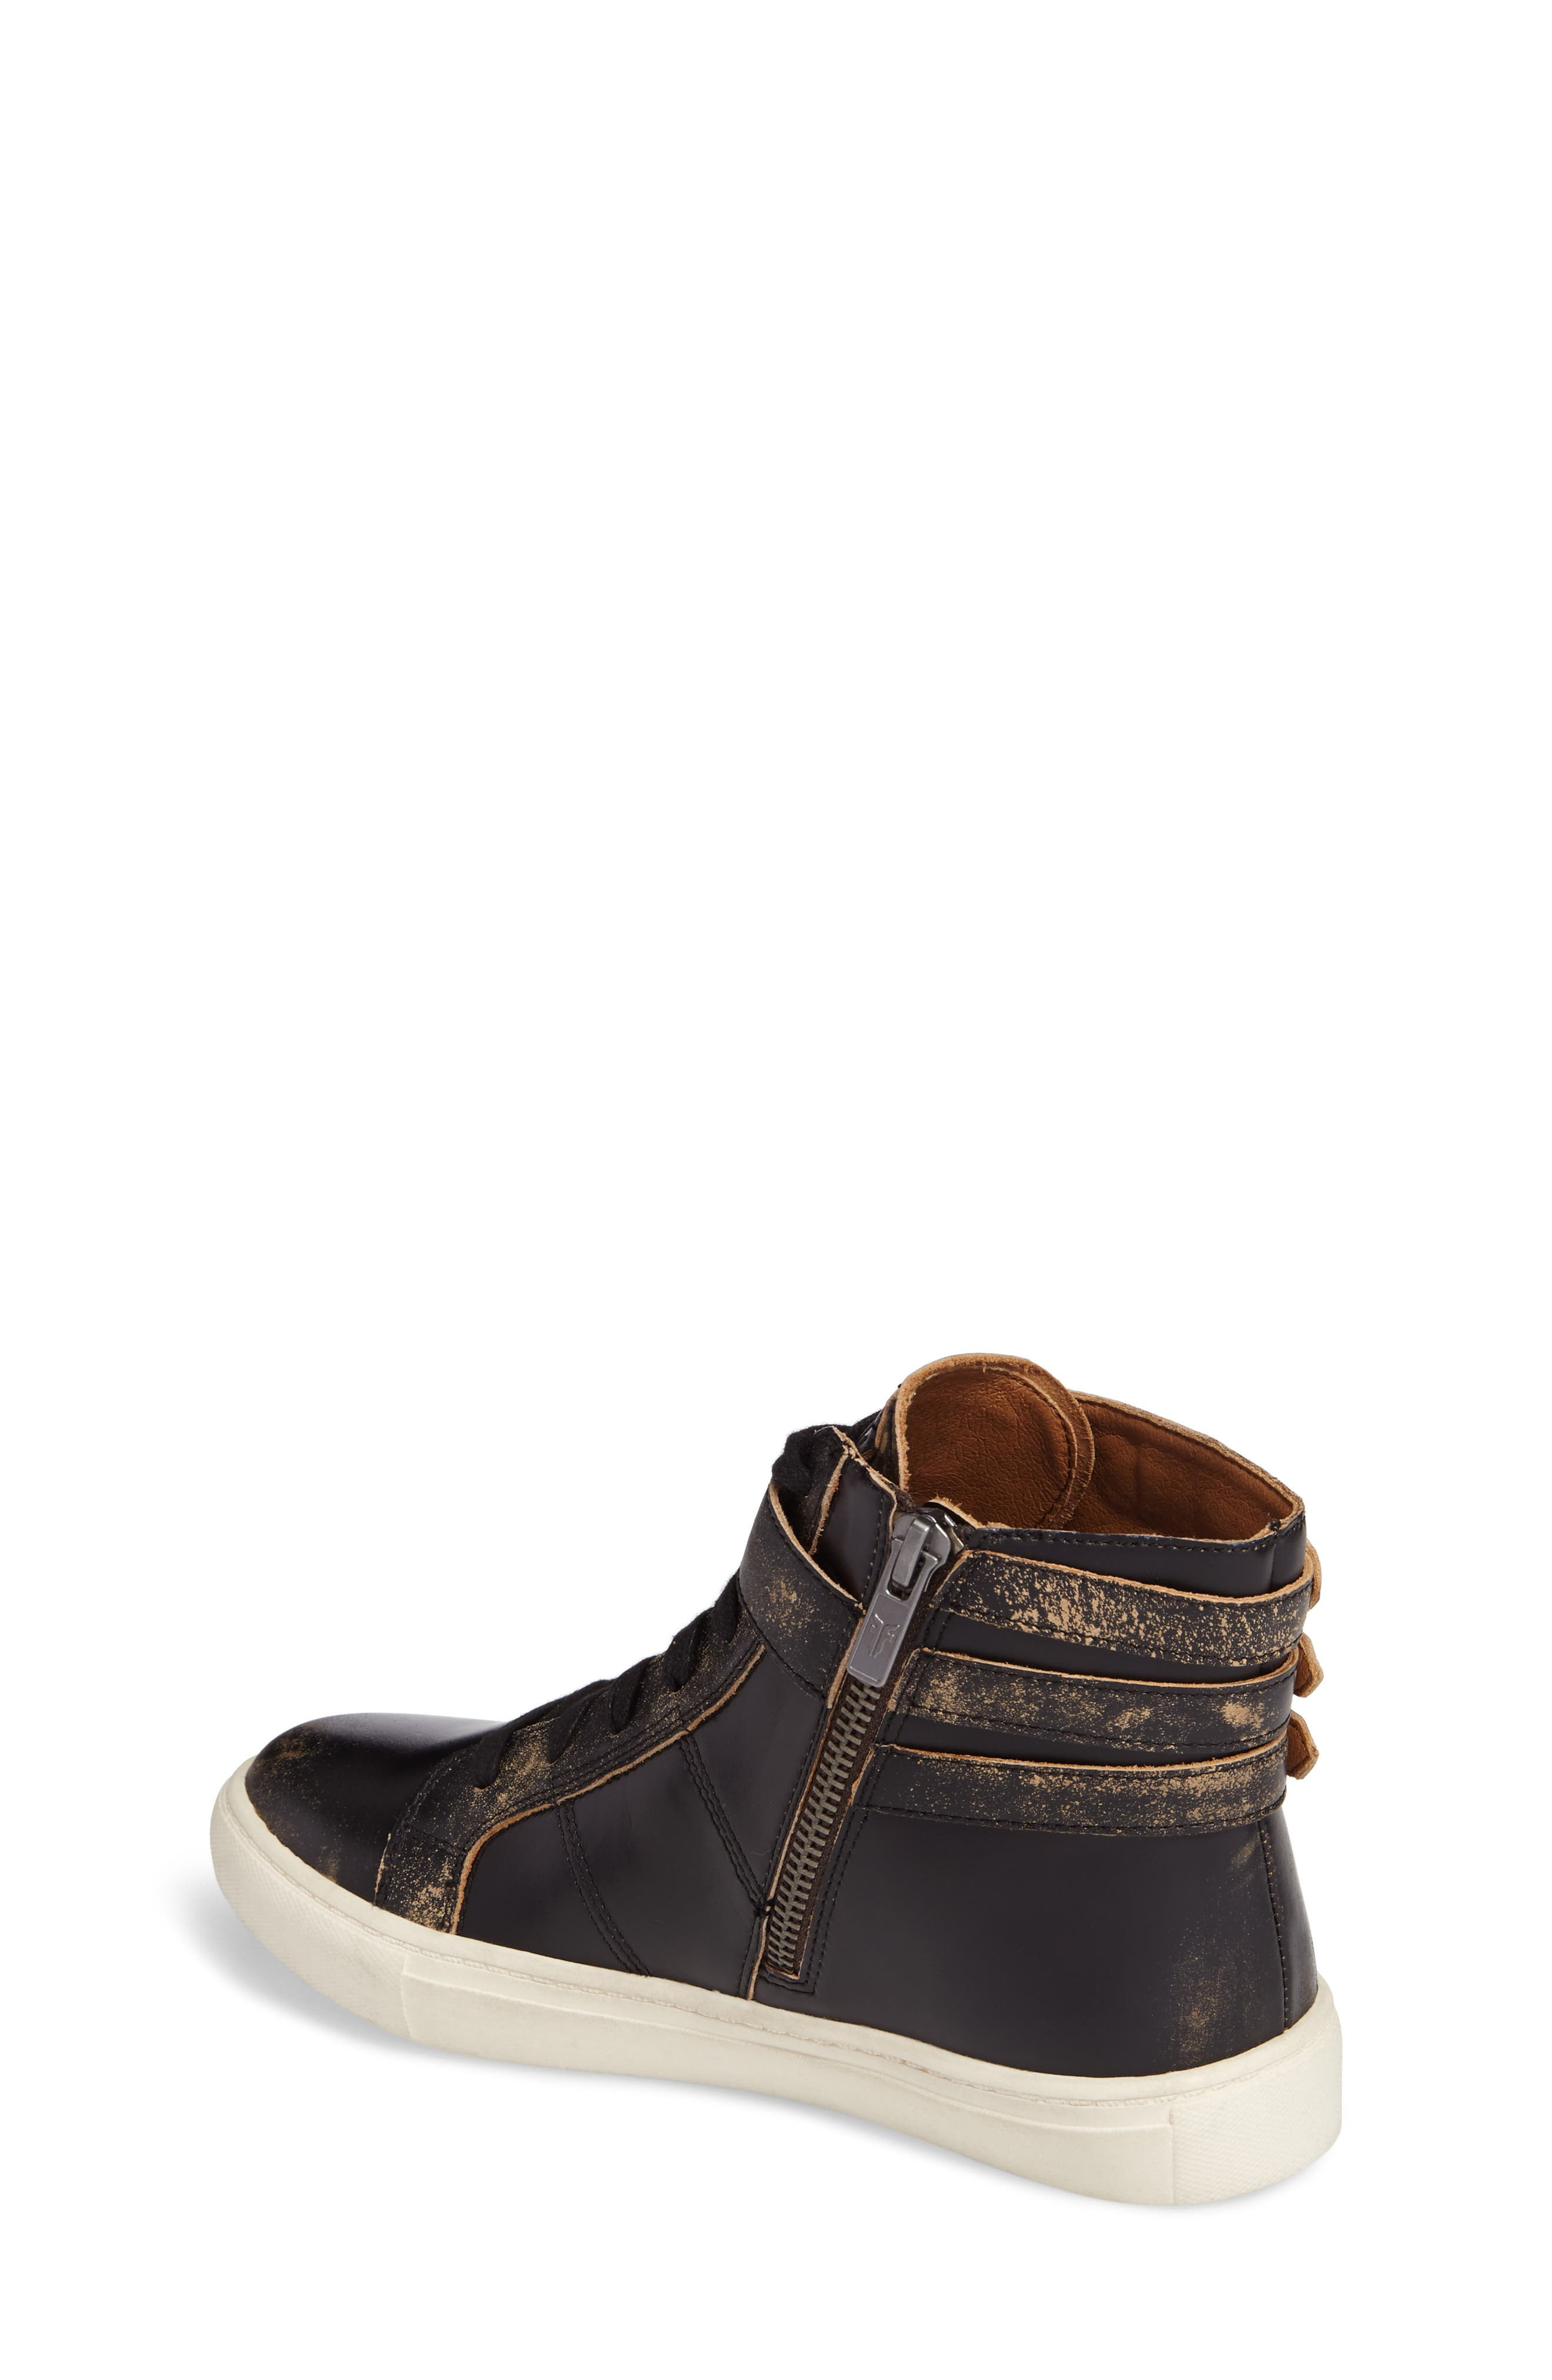 Dylan Buckle Strap High-Top Sneaker,                             Alternate thumbnail 2, color,                             204